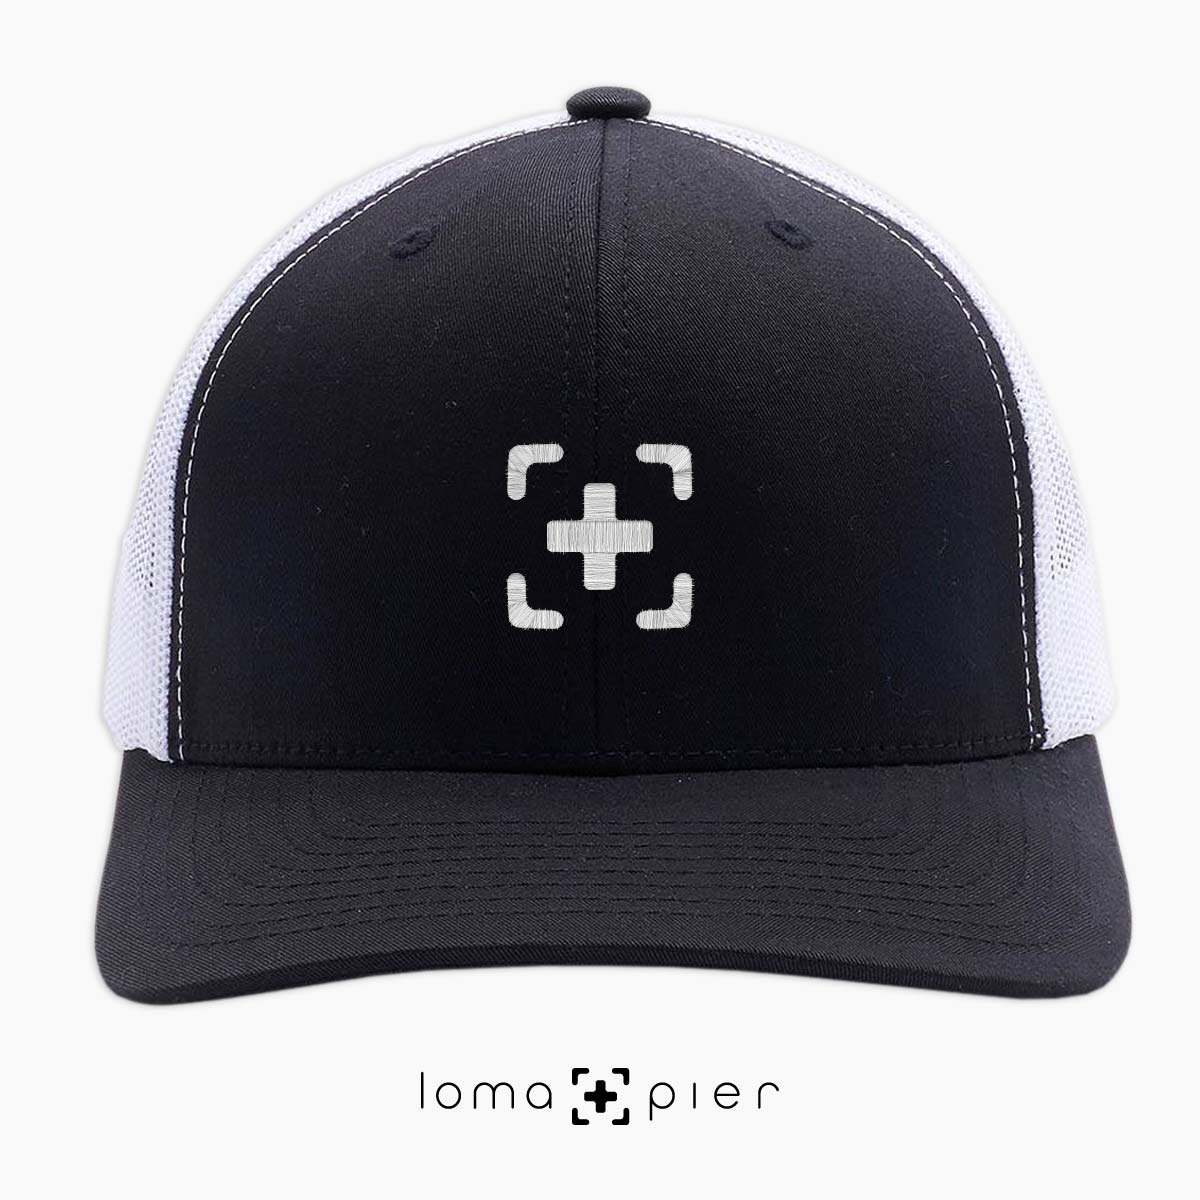 black and white classic netback trucker hat with icon